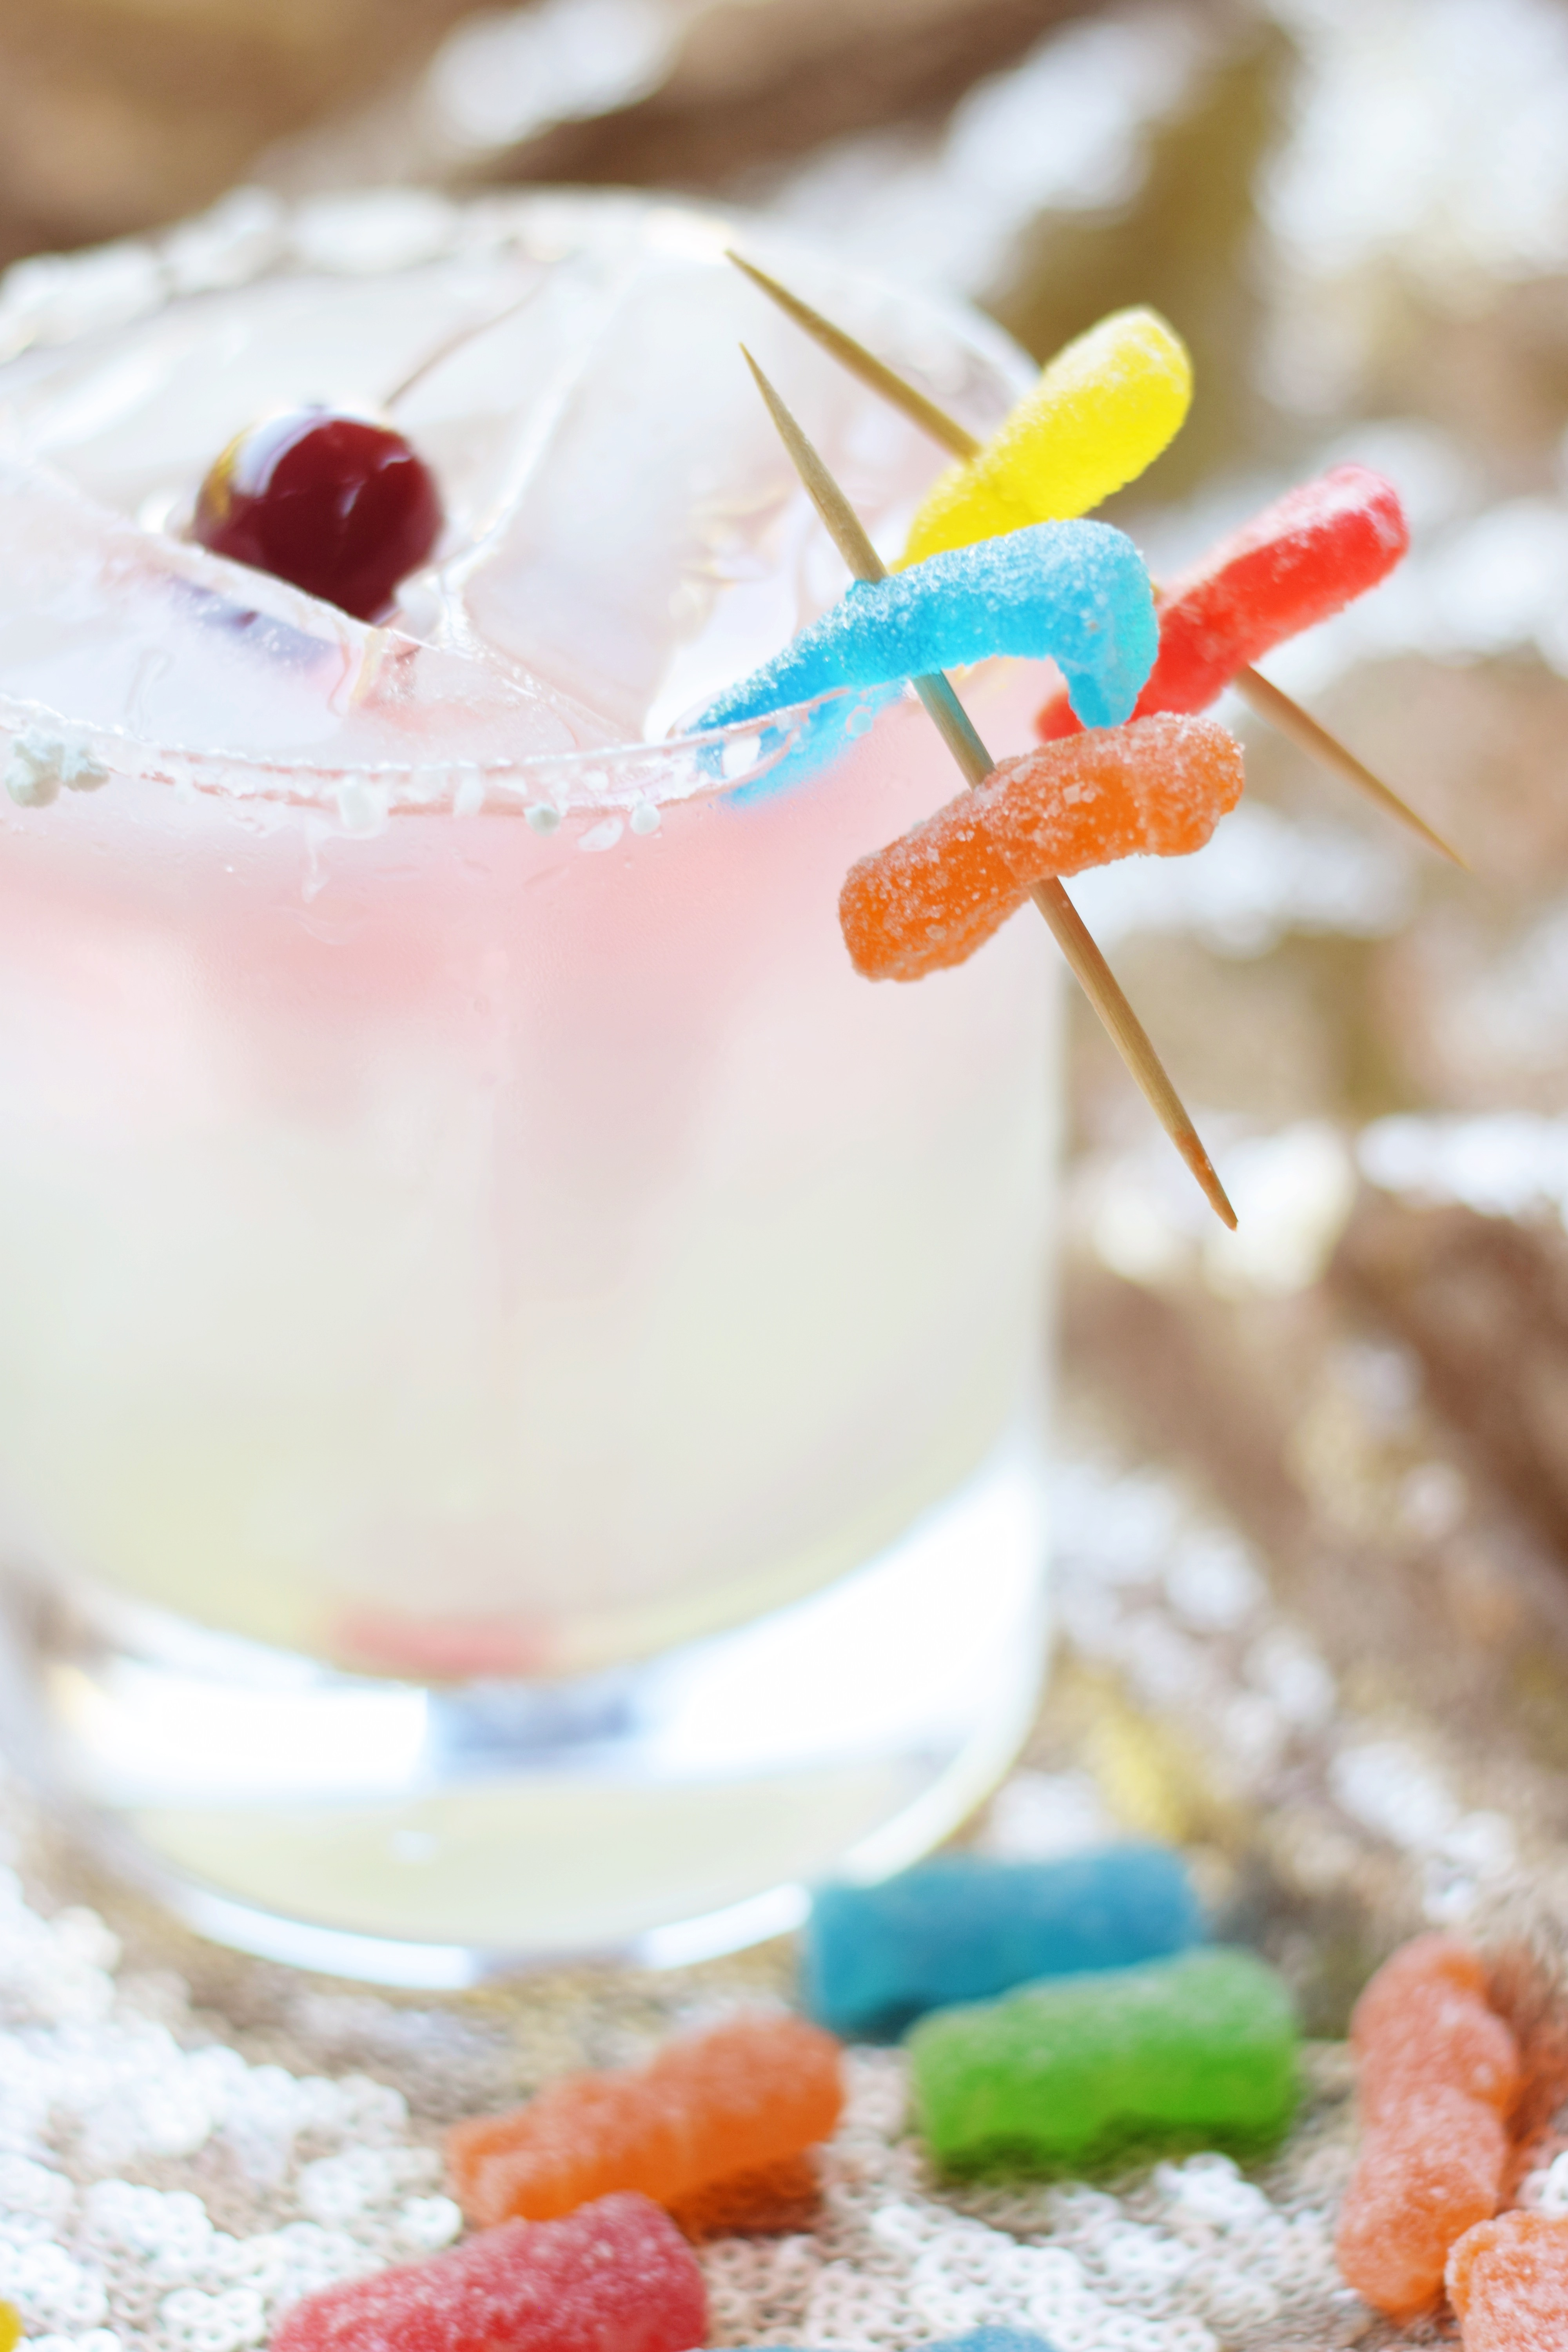 Whiskey Patch - Whiskey Sour - Sour Patch Kids - Candy Cocktail - Halloween Happy Hour - Whiskey Cocktail - Liquor - Whiskey - Happy Hour Idea for Halloween - Halloween Candy - Communikait by Kait Hanson